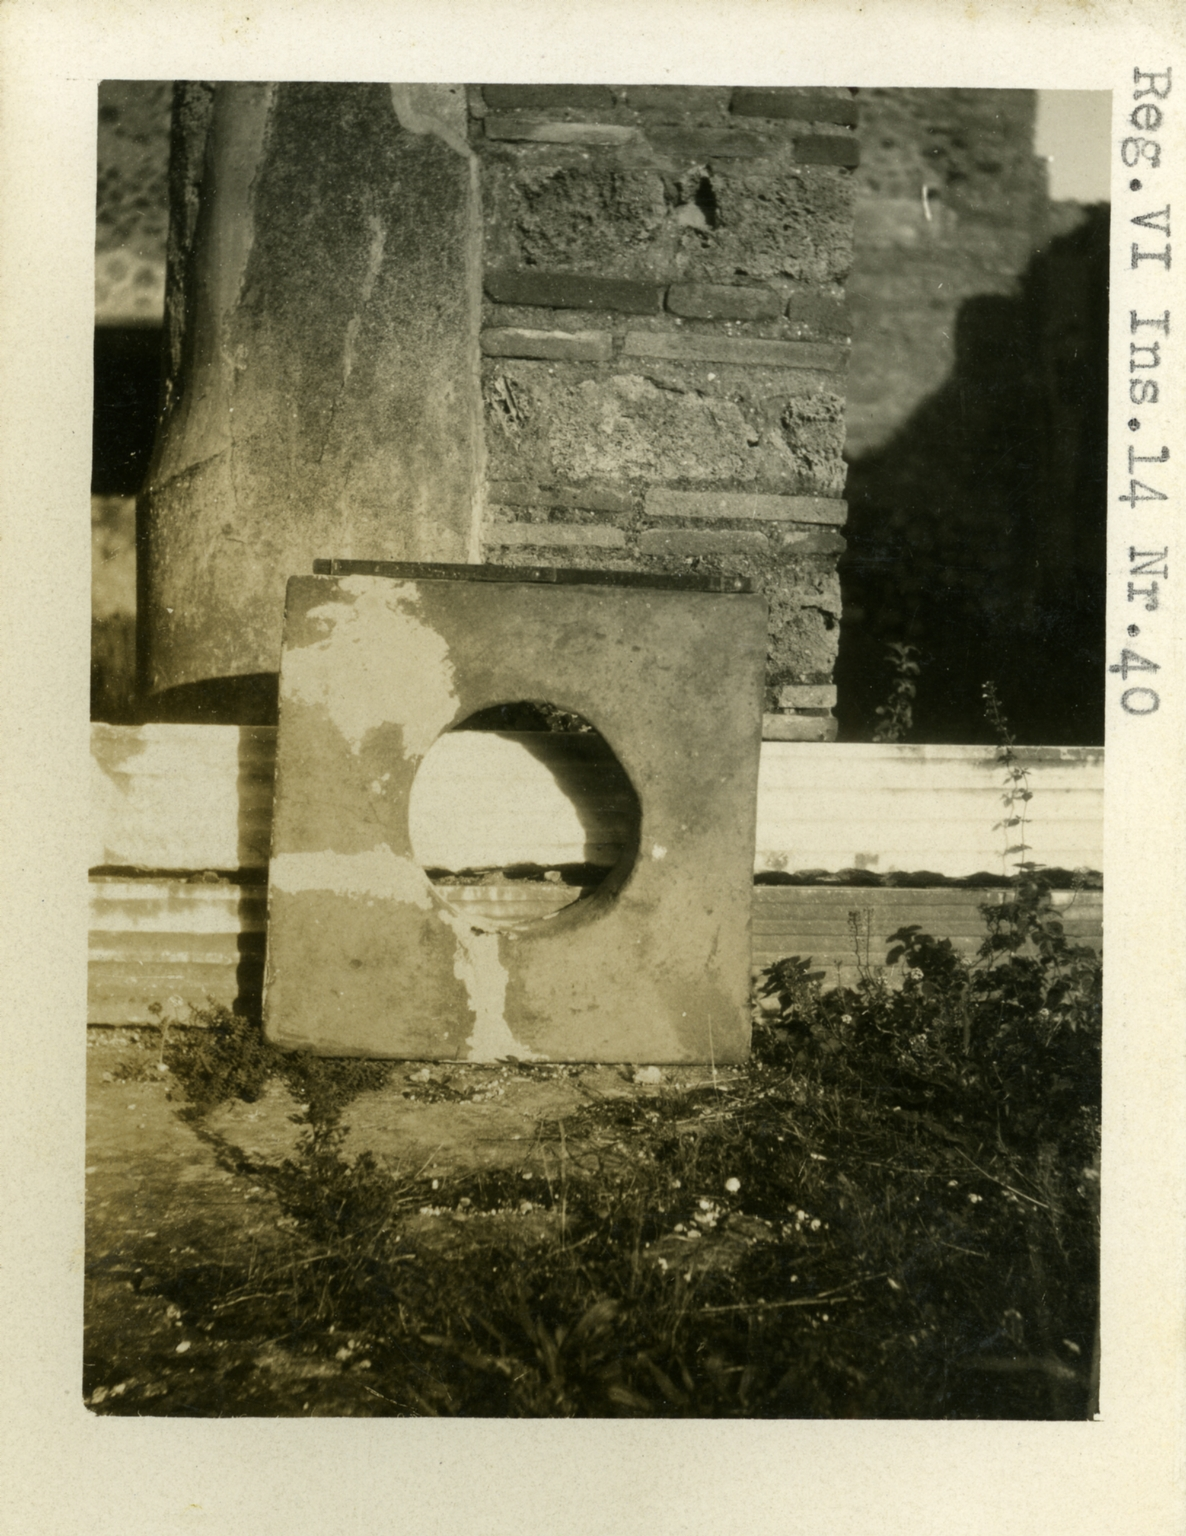 VI.14.40 Pompeii. 1937-39. Items. Photo courtesy of American Academy in Rome, Photographic Archive. Warsher collection no. 1267